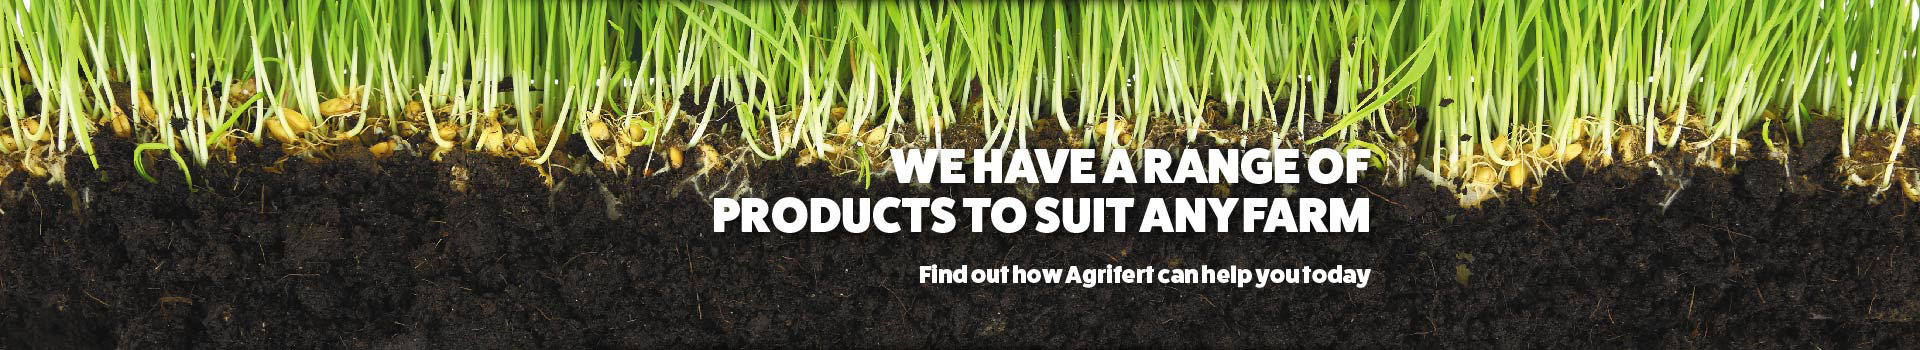 Agrifert Products